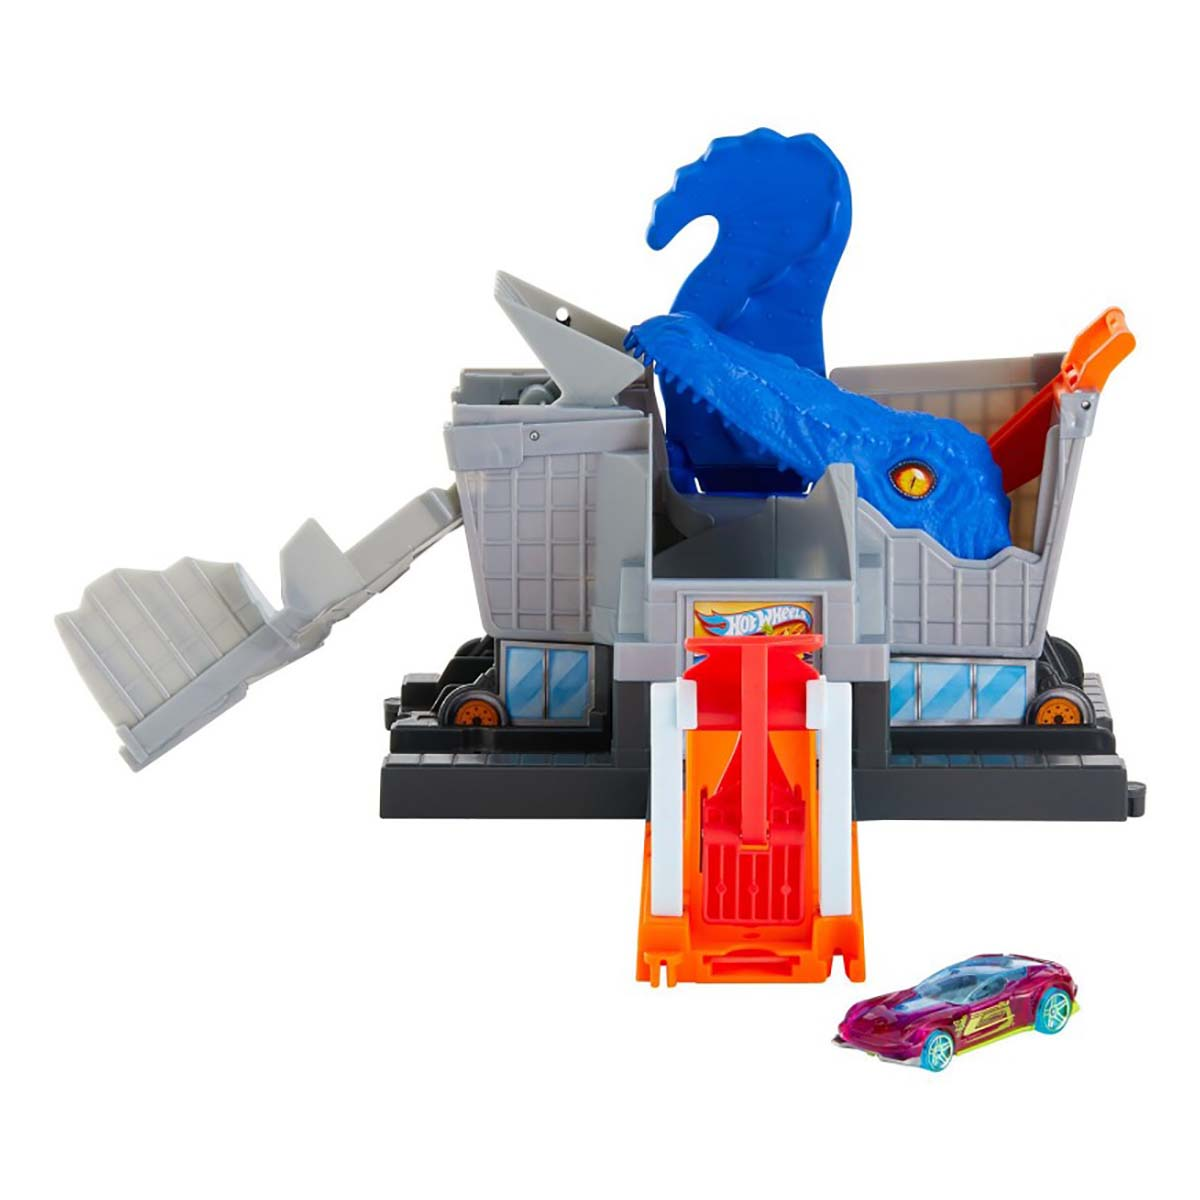 Set de joaca Circuit cu obstacole Hot Wheels City, T-Rex Grocery (GBF92)